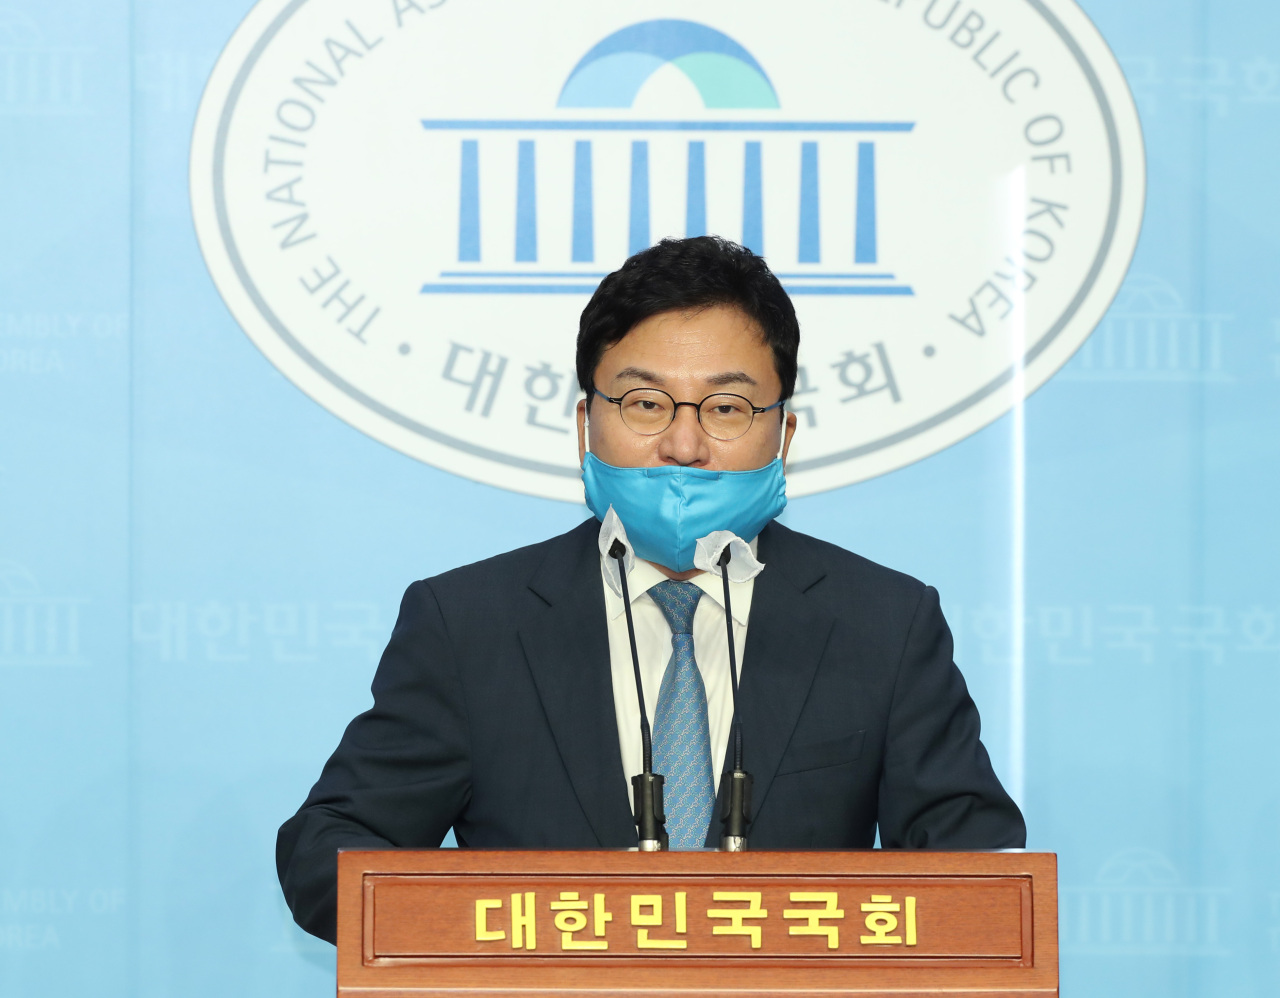 Rep. Lee Sang-jik announces his departure from the ruling Democratic Party at a press conference at the National Assembly in Seoul on Thursday. (Yonhap)